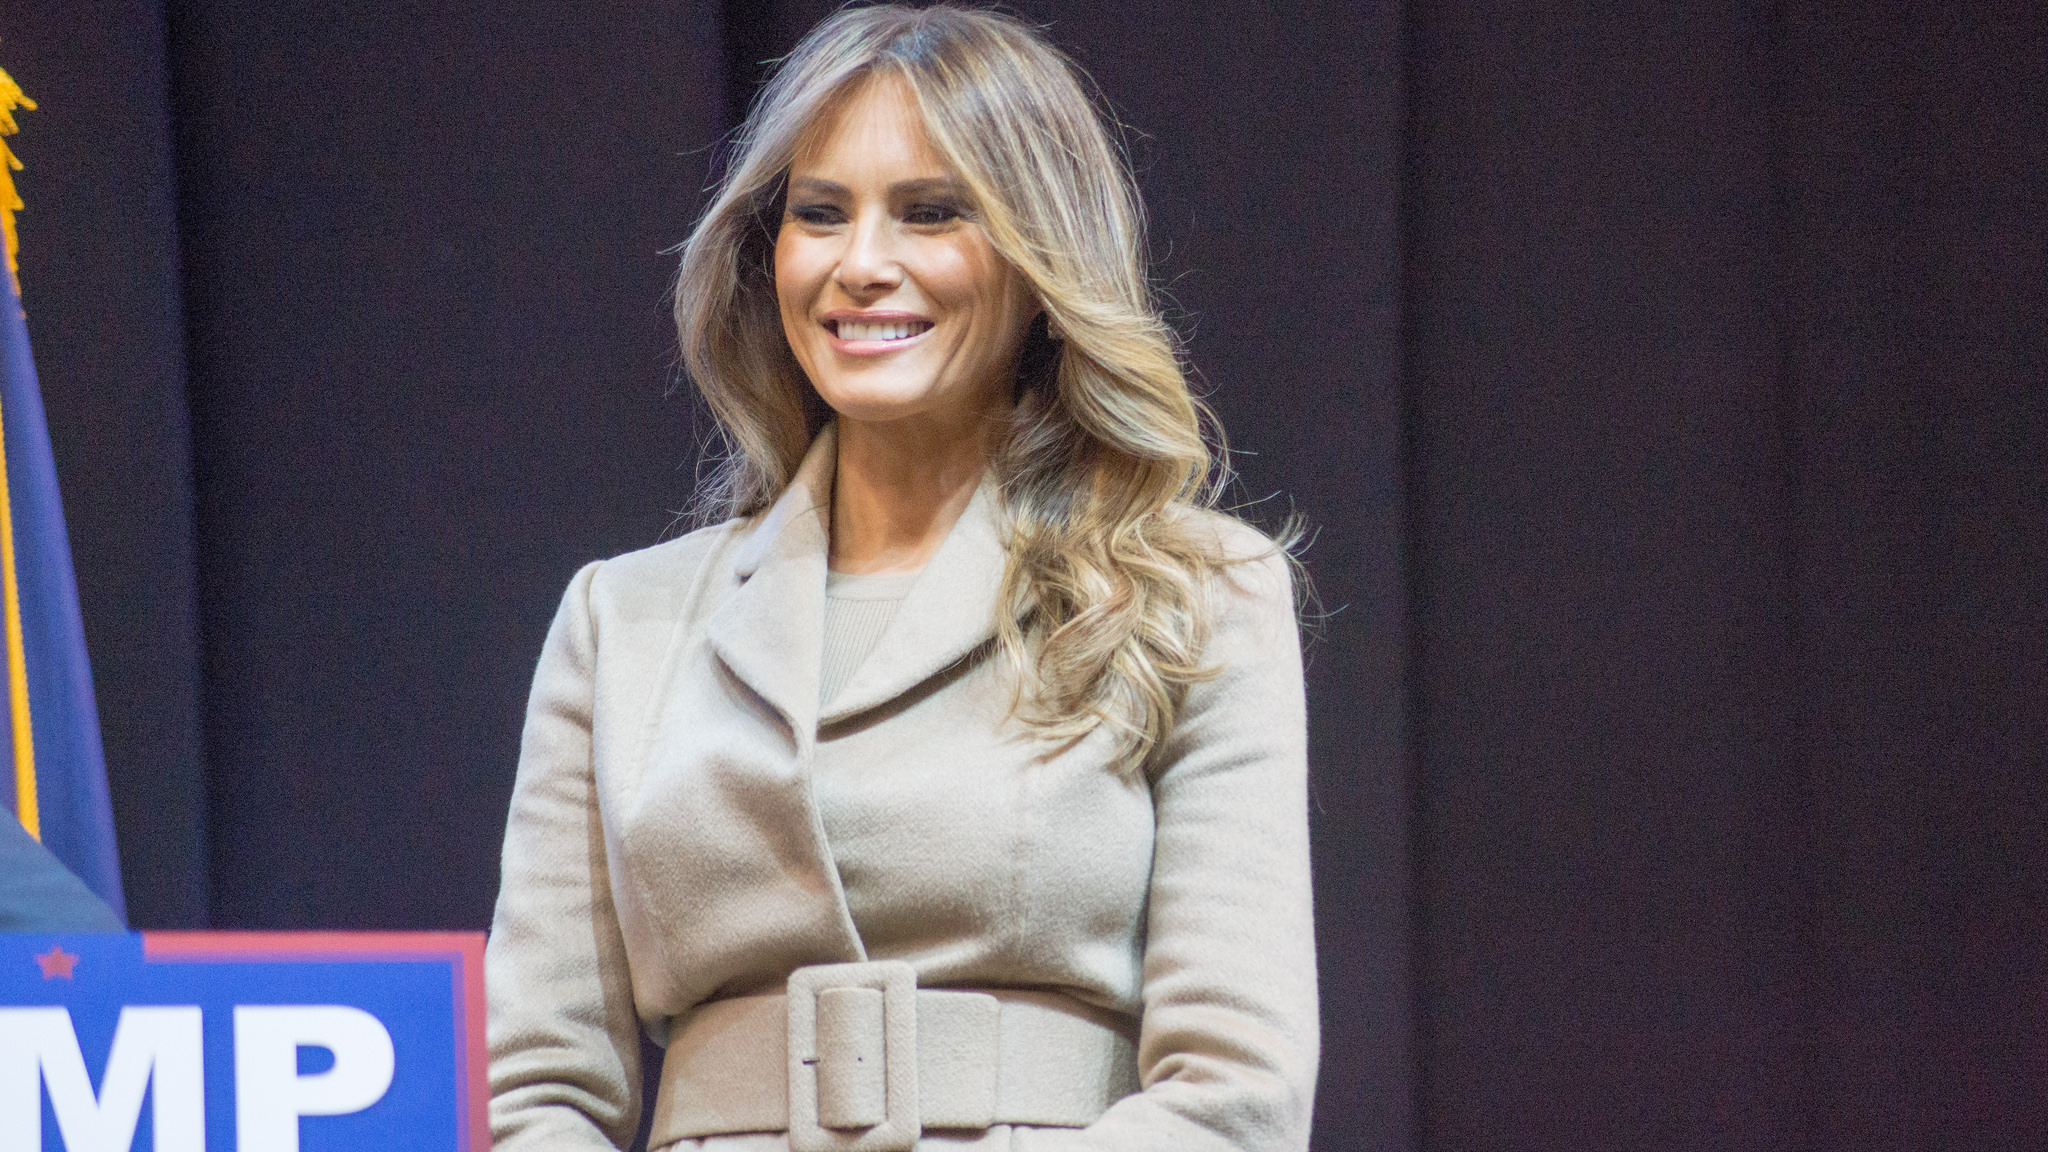 First lady Melania Trump has re-filed a libel lawsuit against the corporation that publishes the Daily Mail's website, this time in New York, for reporting rumours that she worked as an escort. (Photo: Marc Nozell/ Flickr)